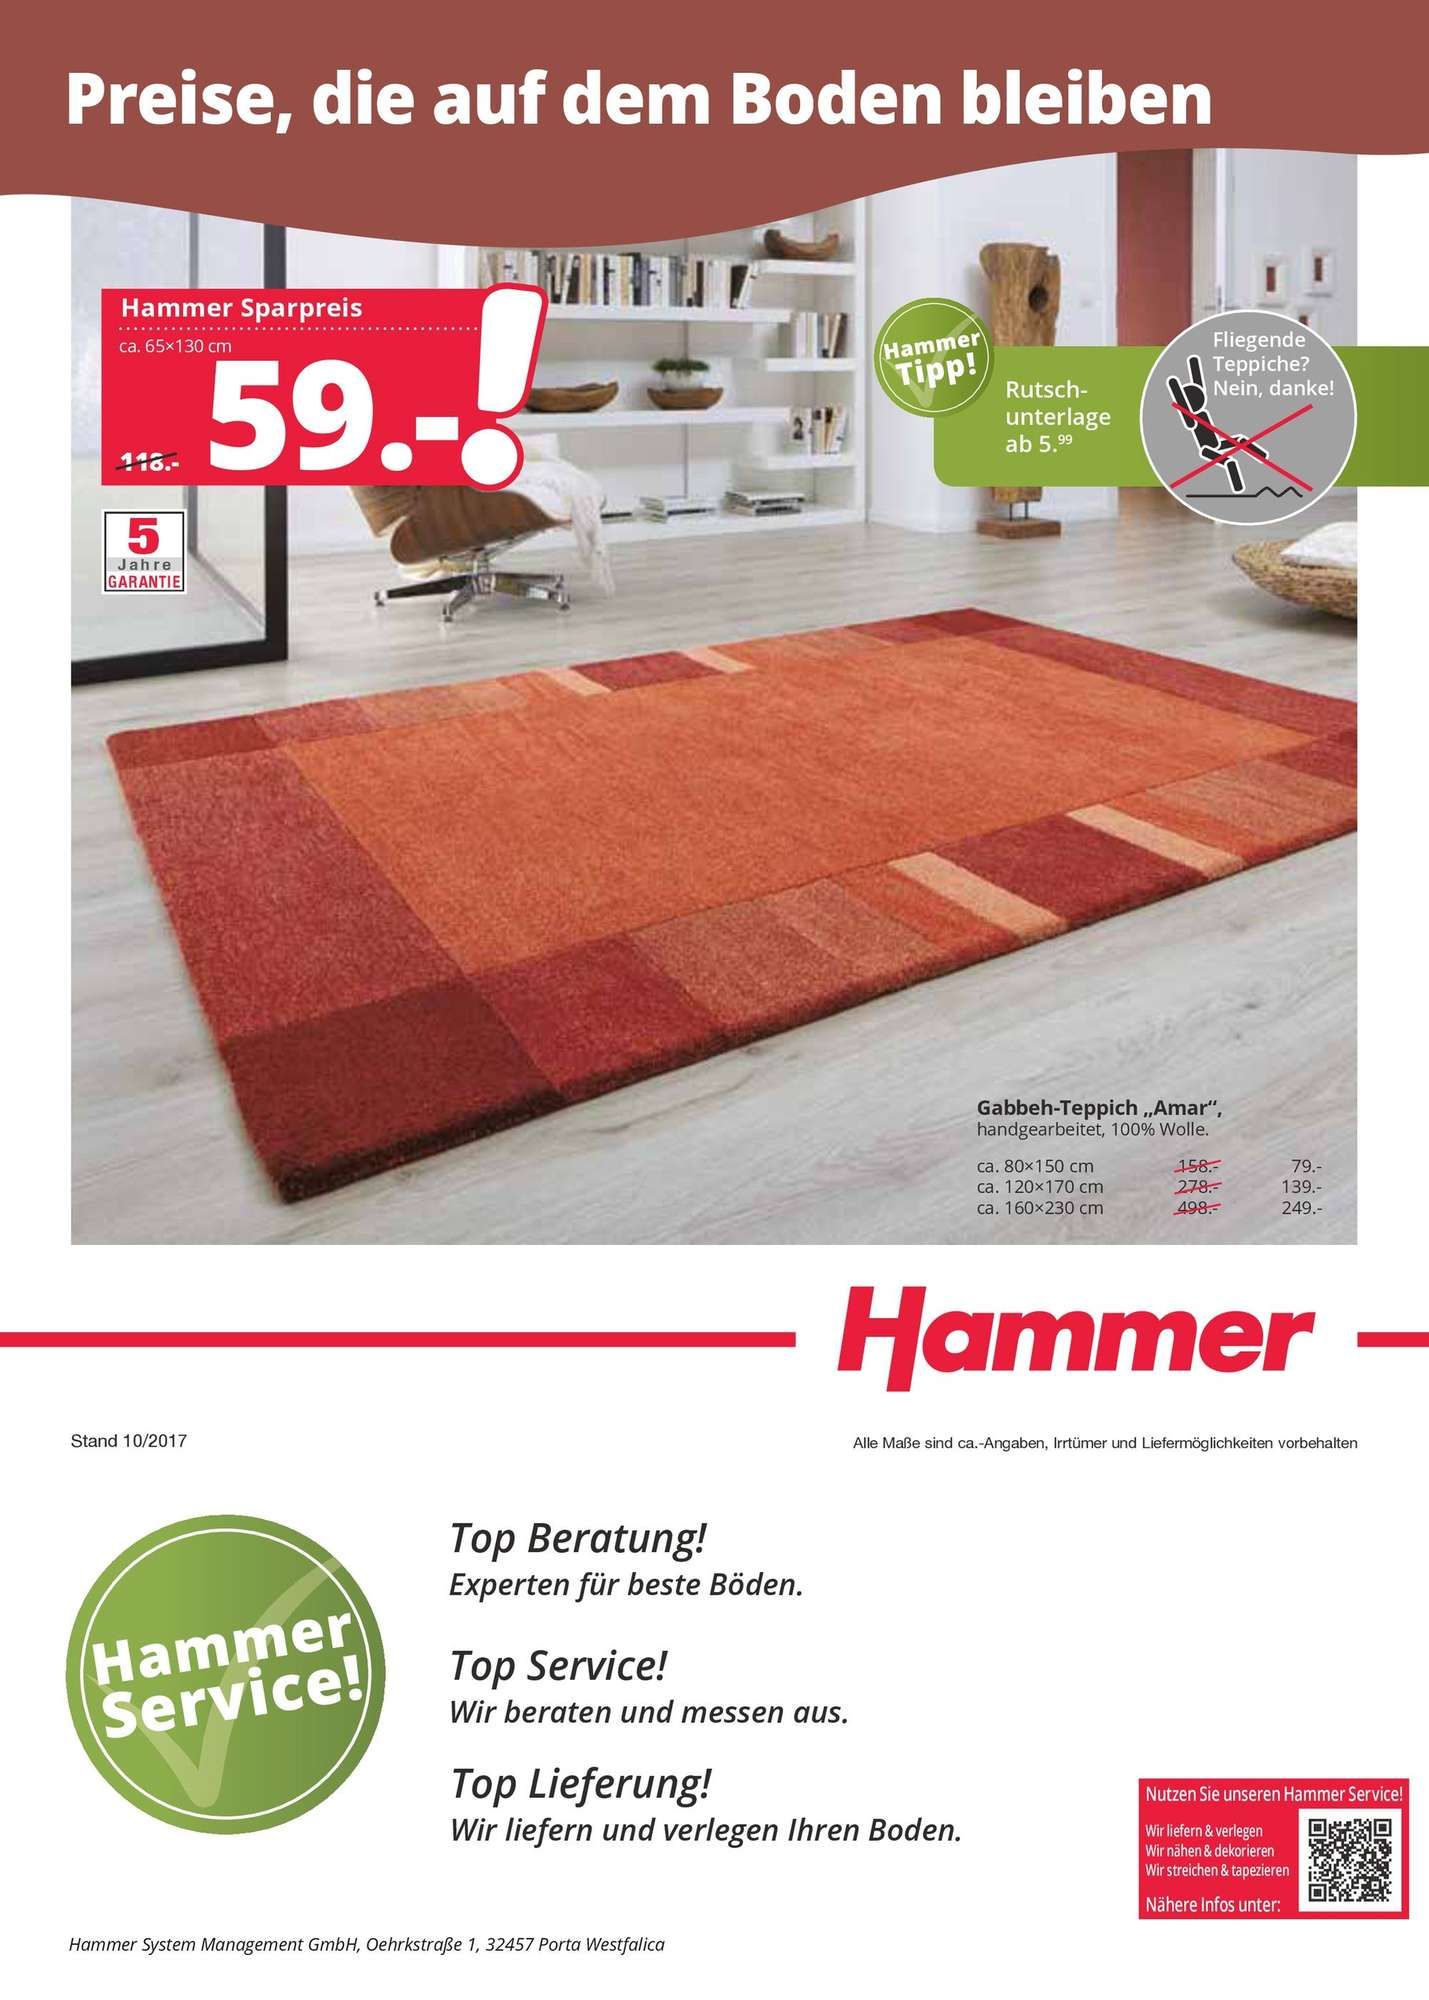 teppich hammer awesome shaggy lila hochflor langflor teppich hochflor teppich ausverkauf hammer. Black Bedroom Furniture Sets. Home Design Ideas